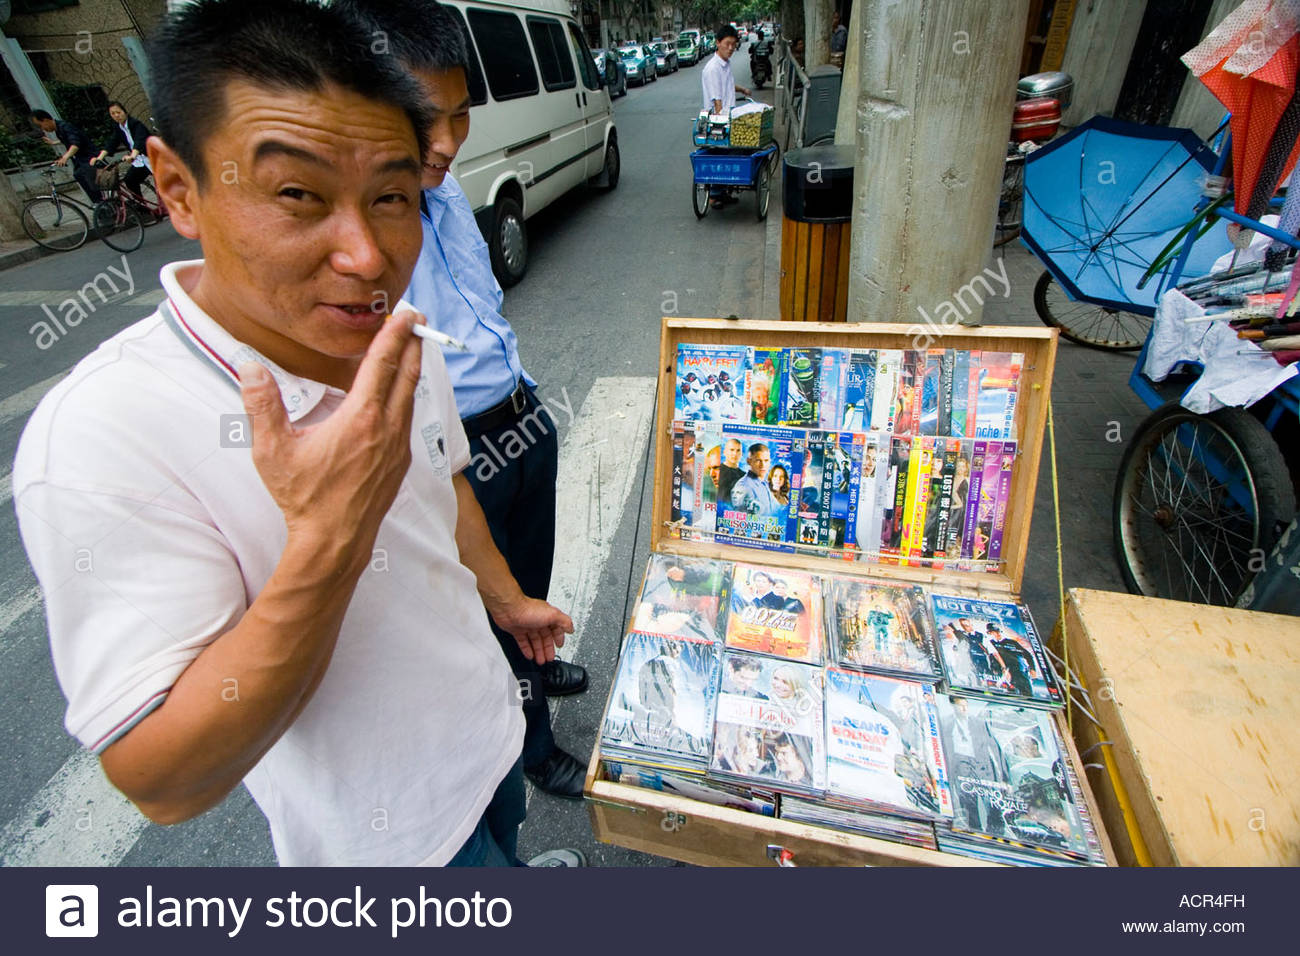 chinese-man-selling-fake-counterfeit-dvds-on-the-street-shanghai-china-ACR4FH